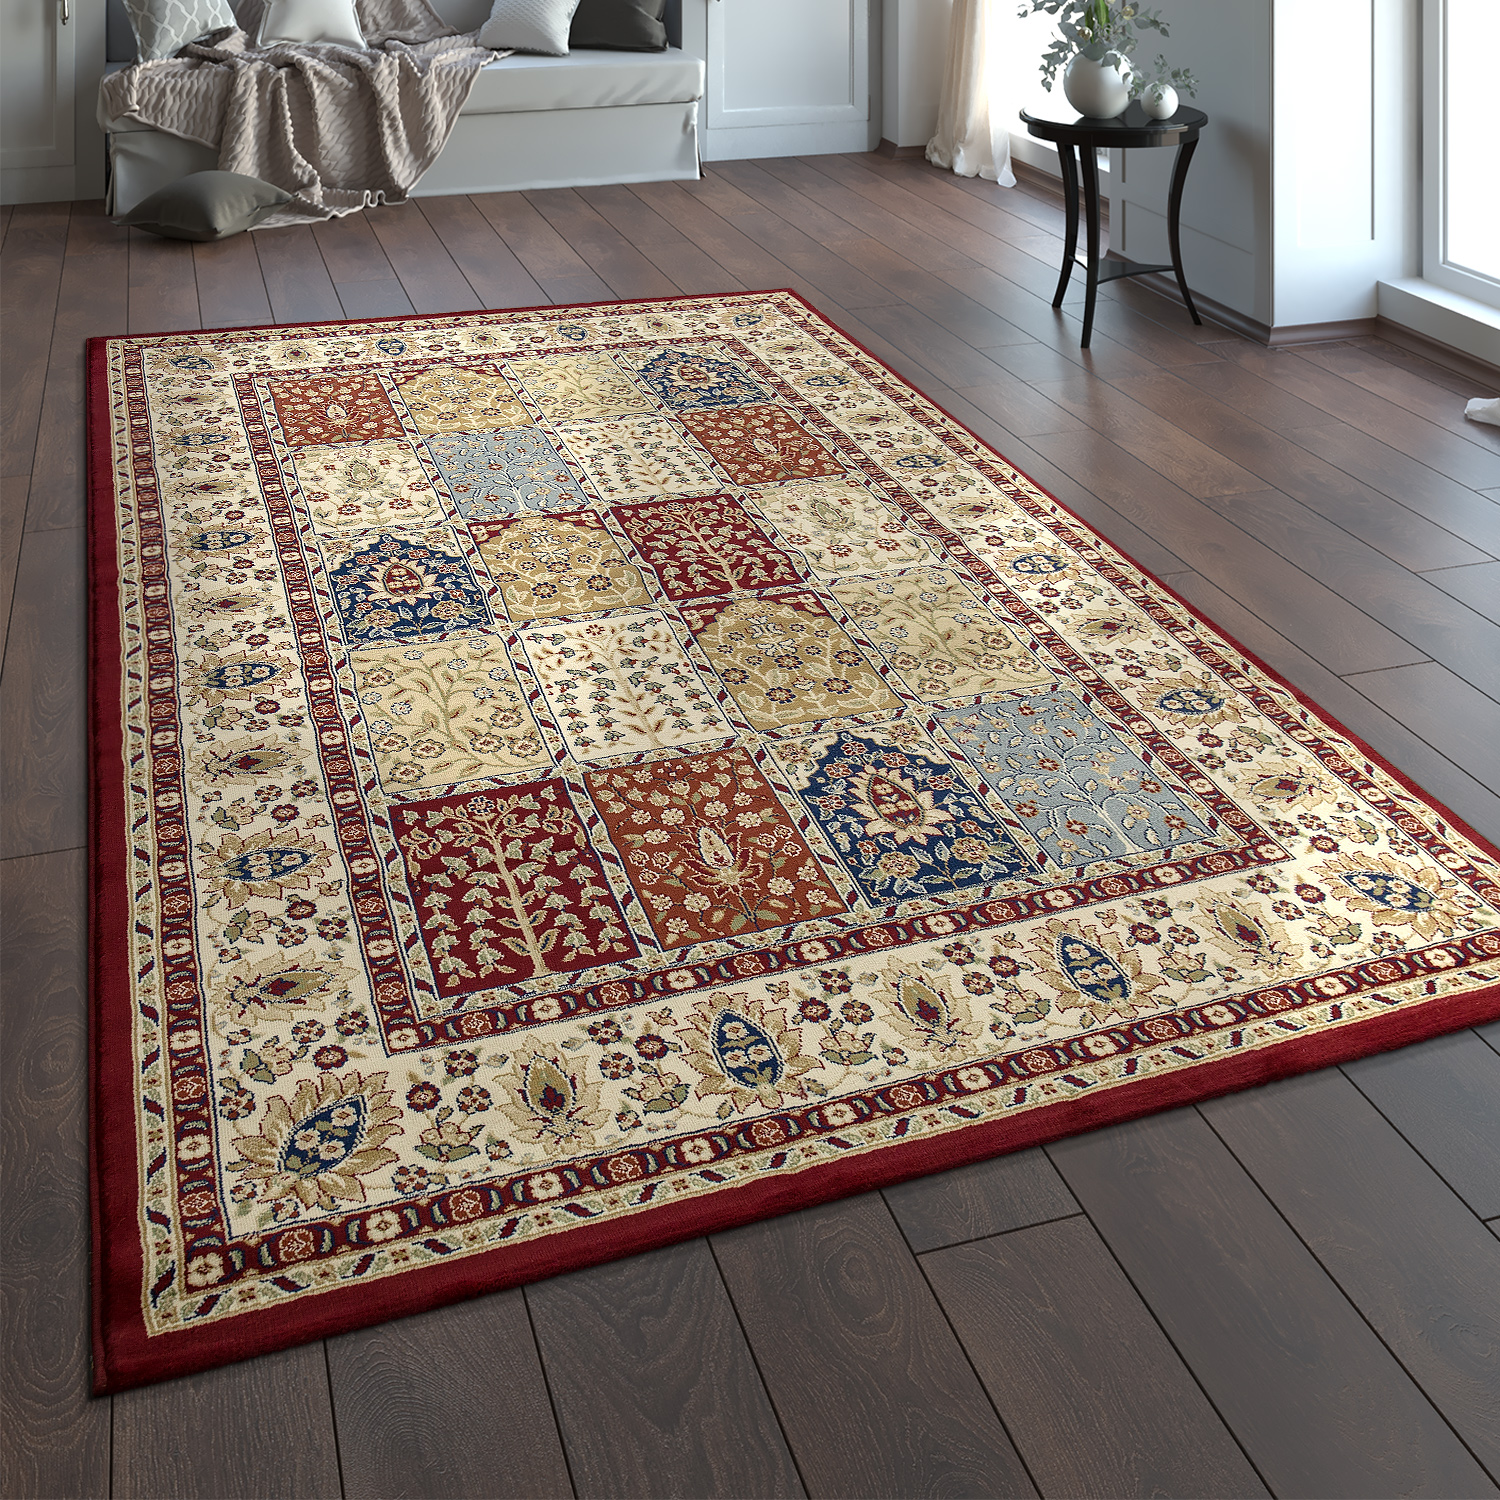 tapis oriental traditionnel persan aspect bordure d corations rouge bleu beige cr me tapis. Black Bedroom Furniture Sets. Home Design Ideas